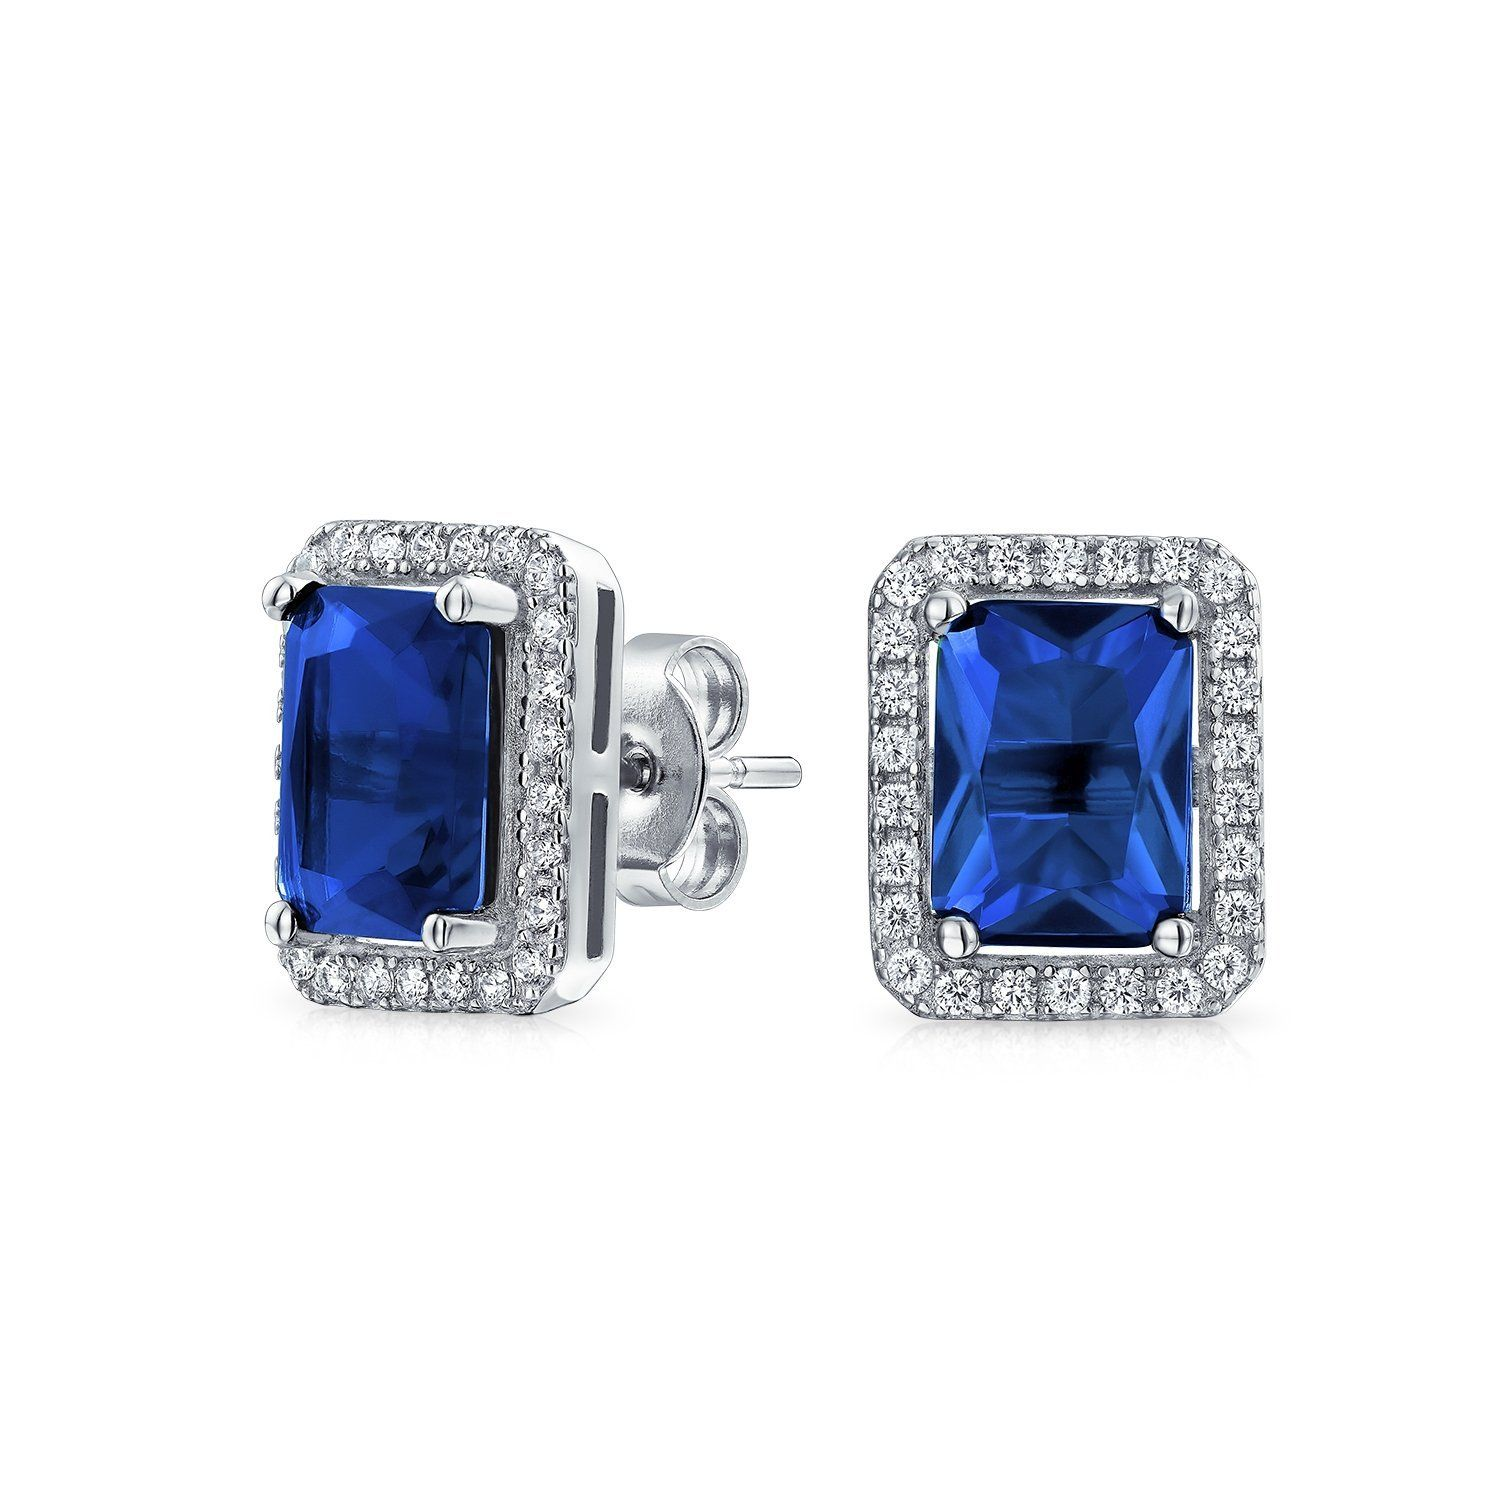 Bling Jewelry Simulated Sapphire September Birthstone CZ Stud